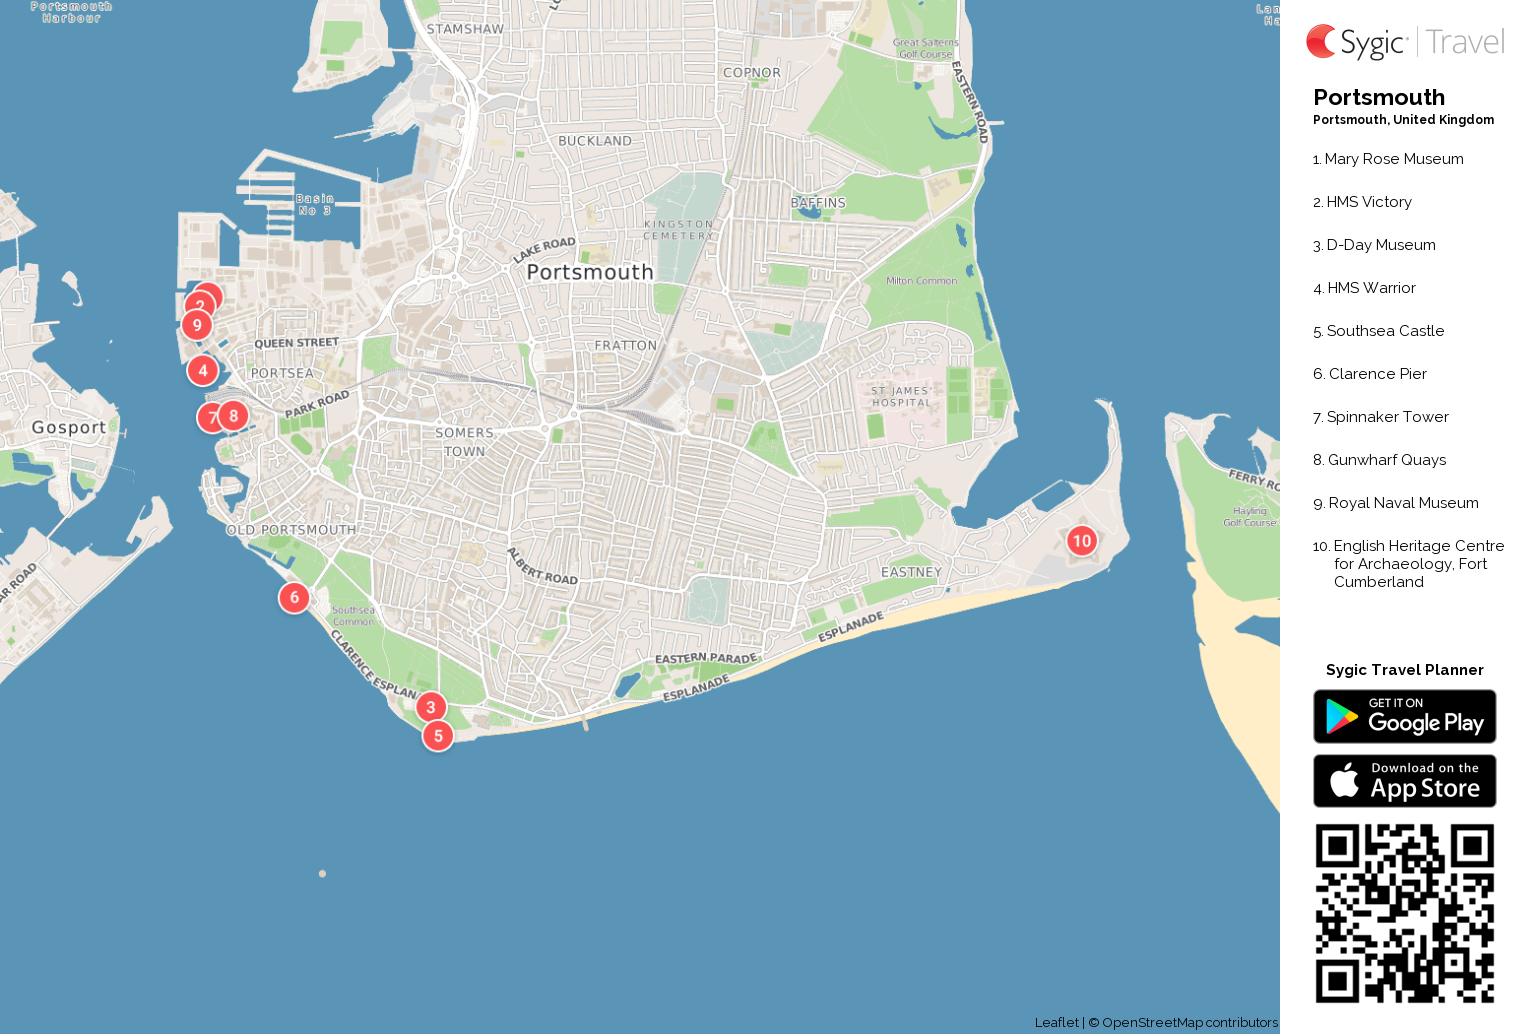 portsmouth-printable-tourist-map